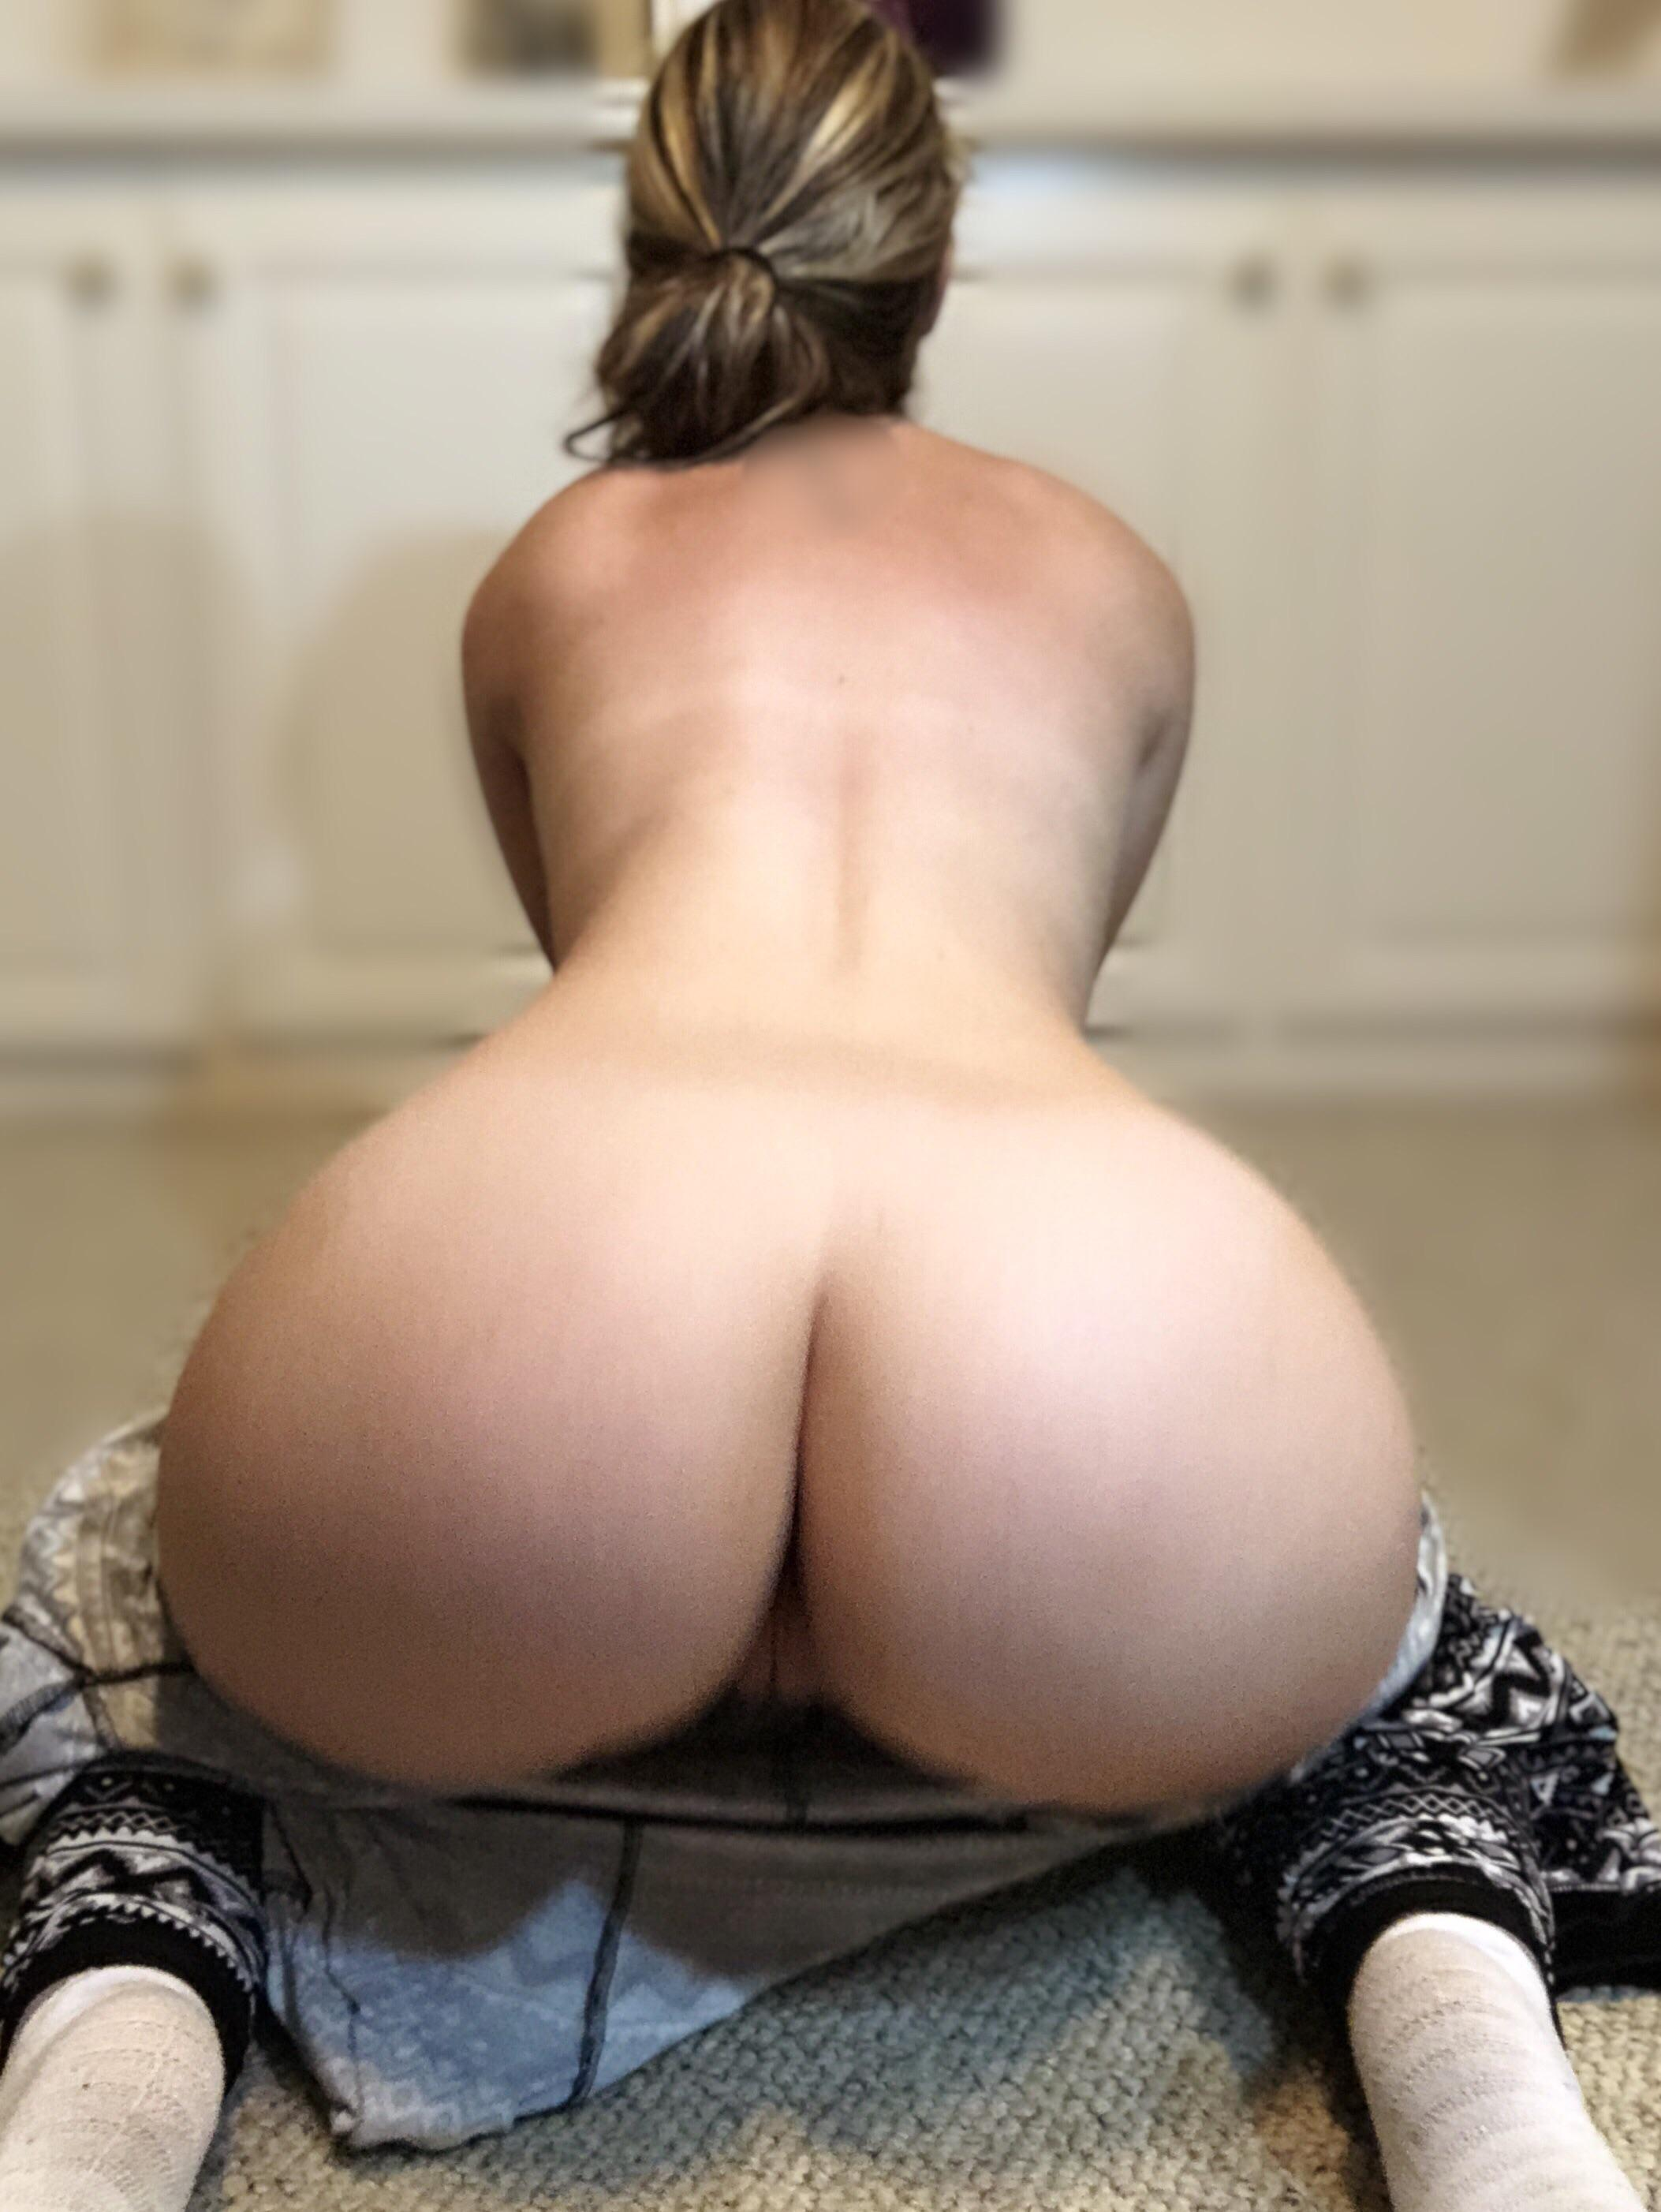 Naked woman bend over